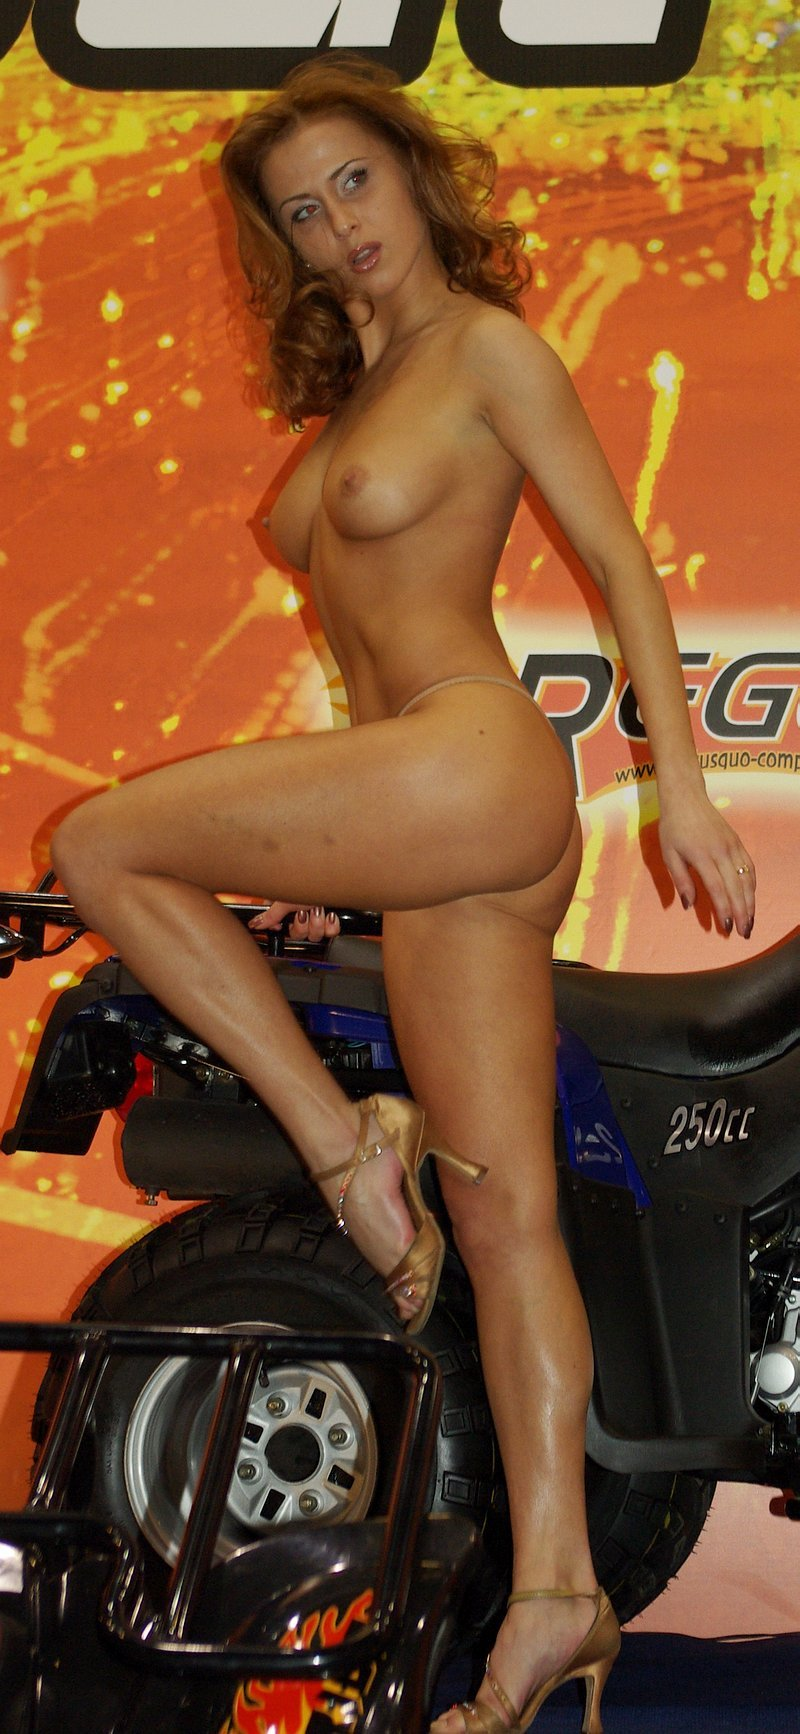 Girls on Moto Show